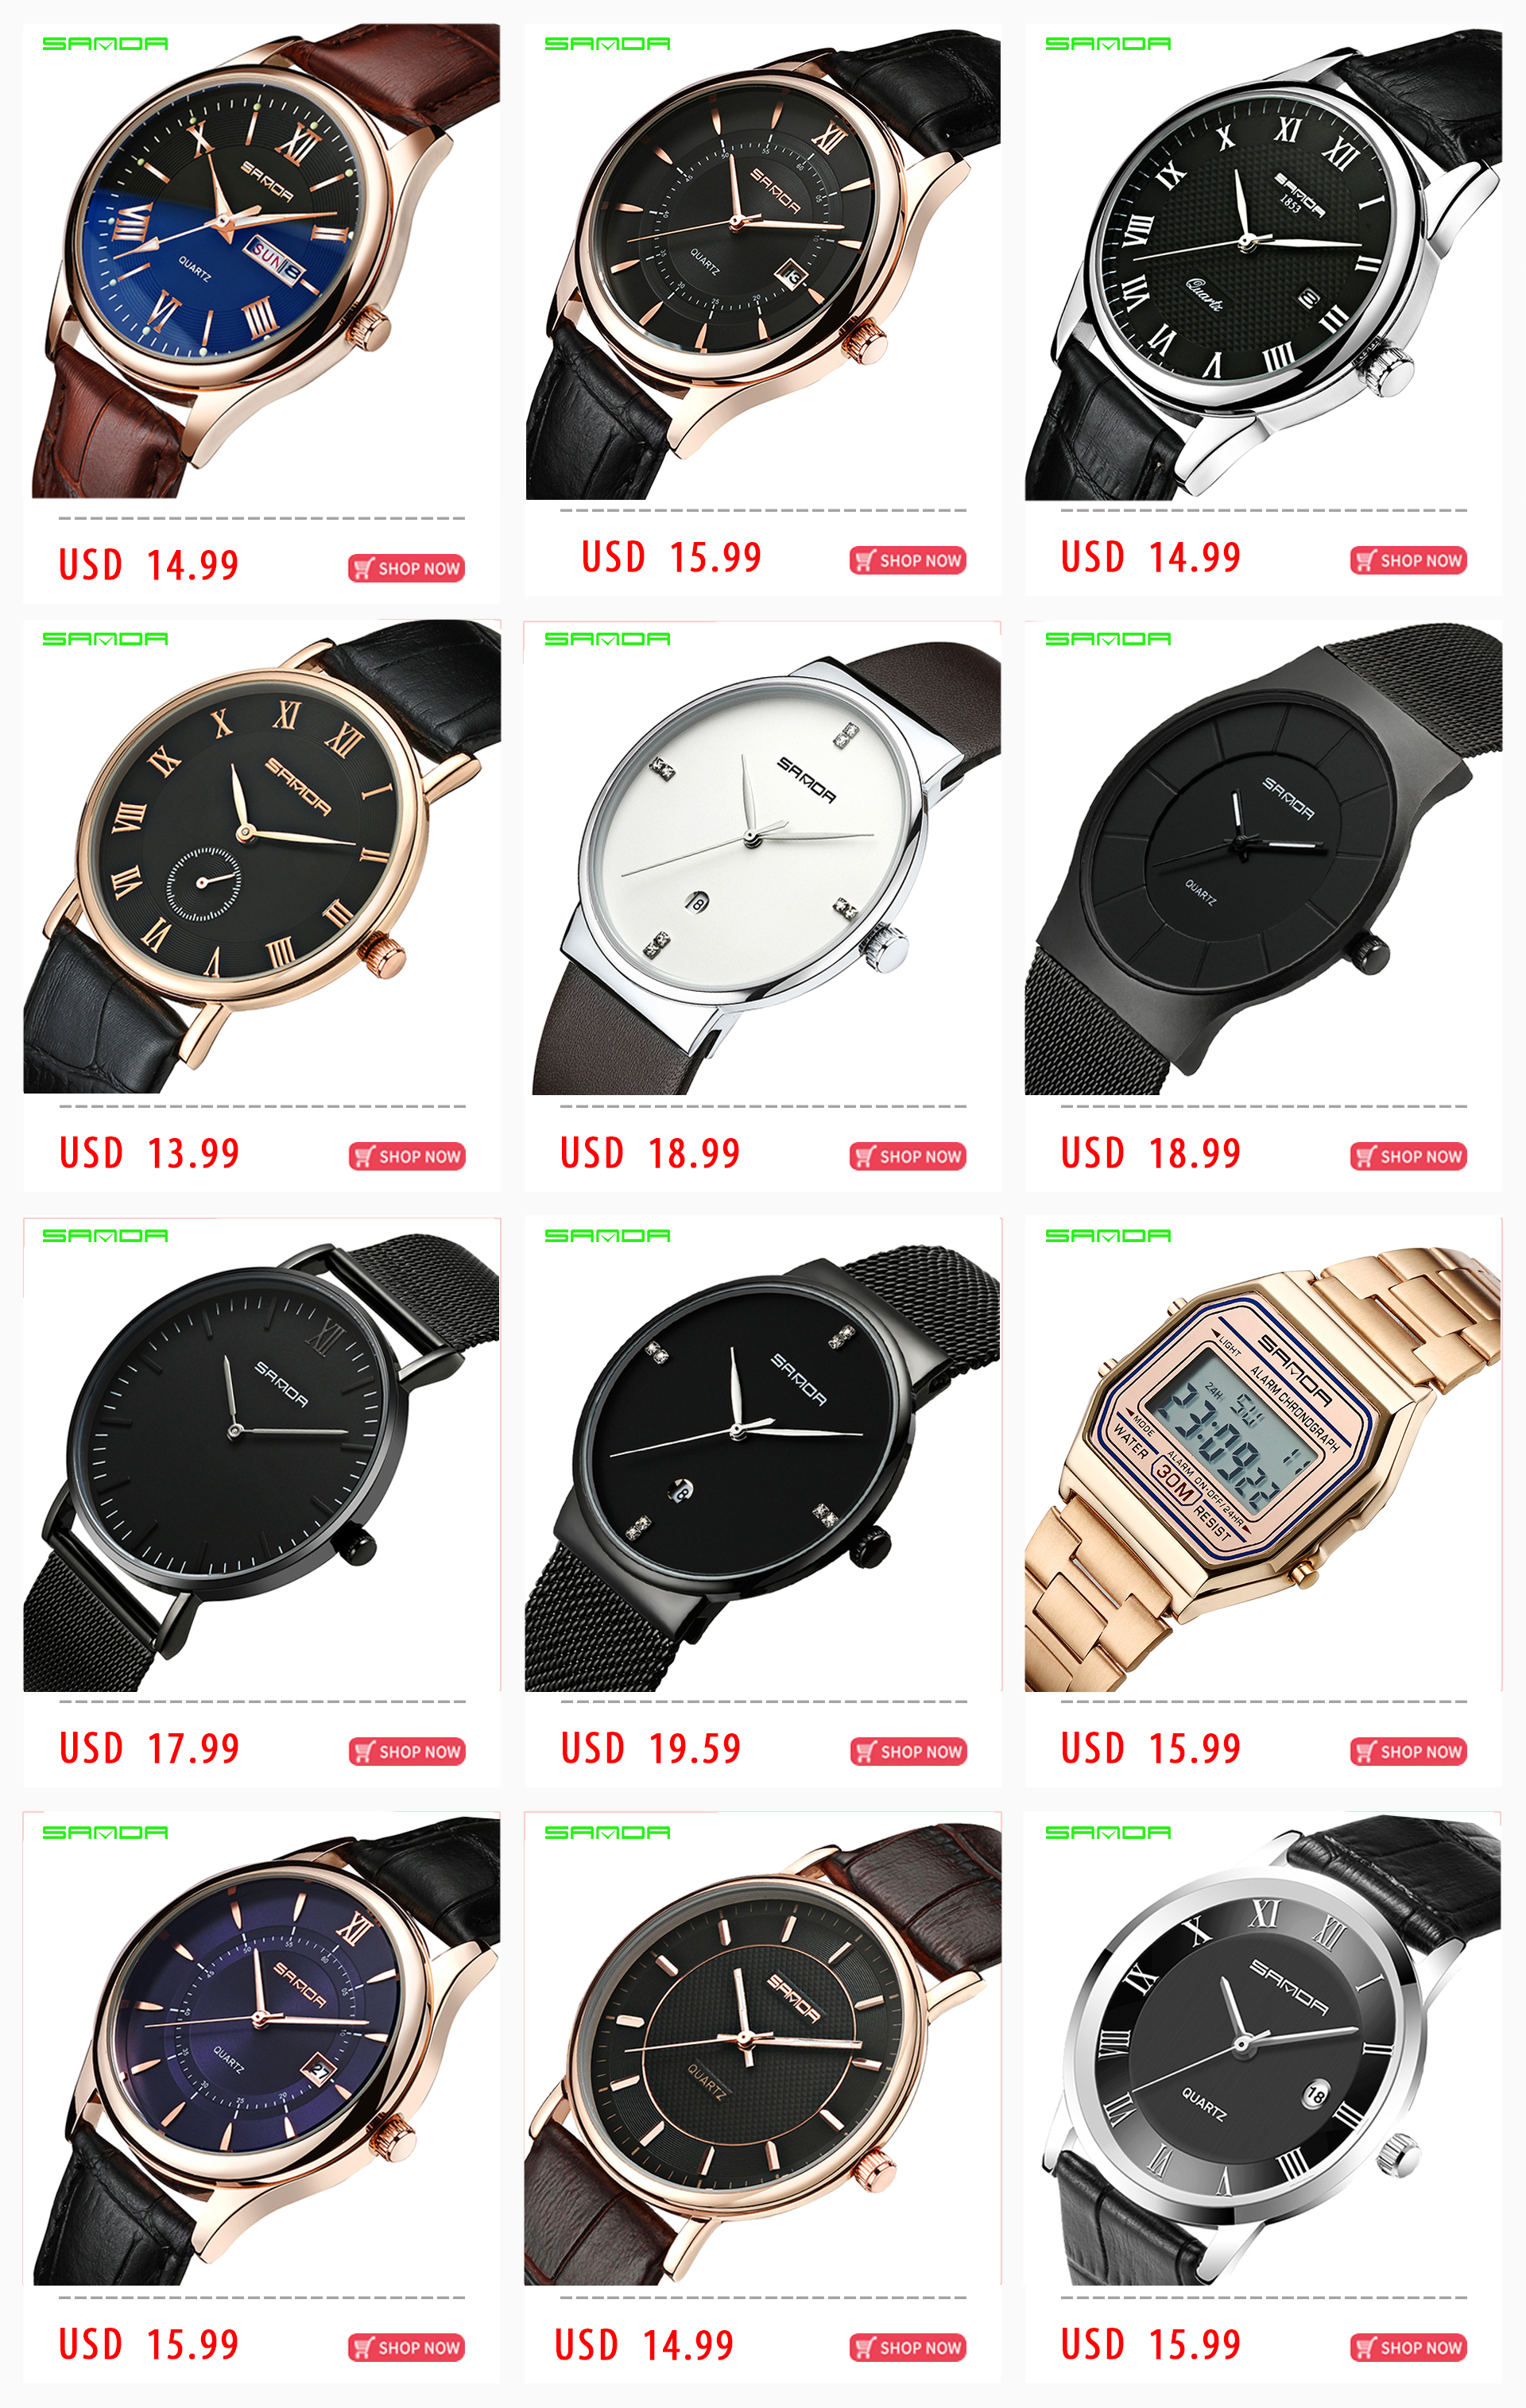 silicone com and men quartz manufacturers watches enforcement waterproof suppliers law at alibaba watch showroom classic geneva